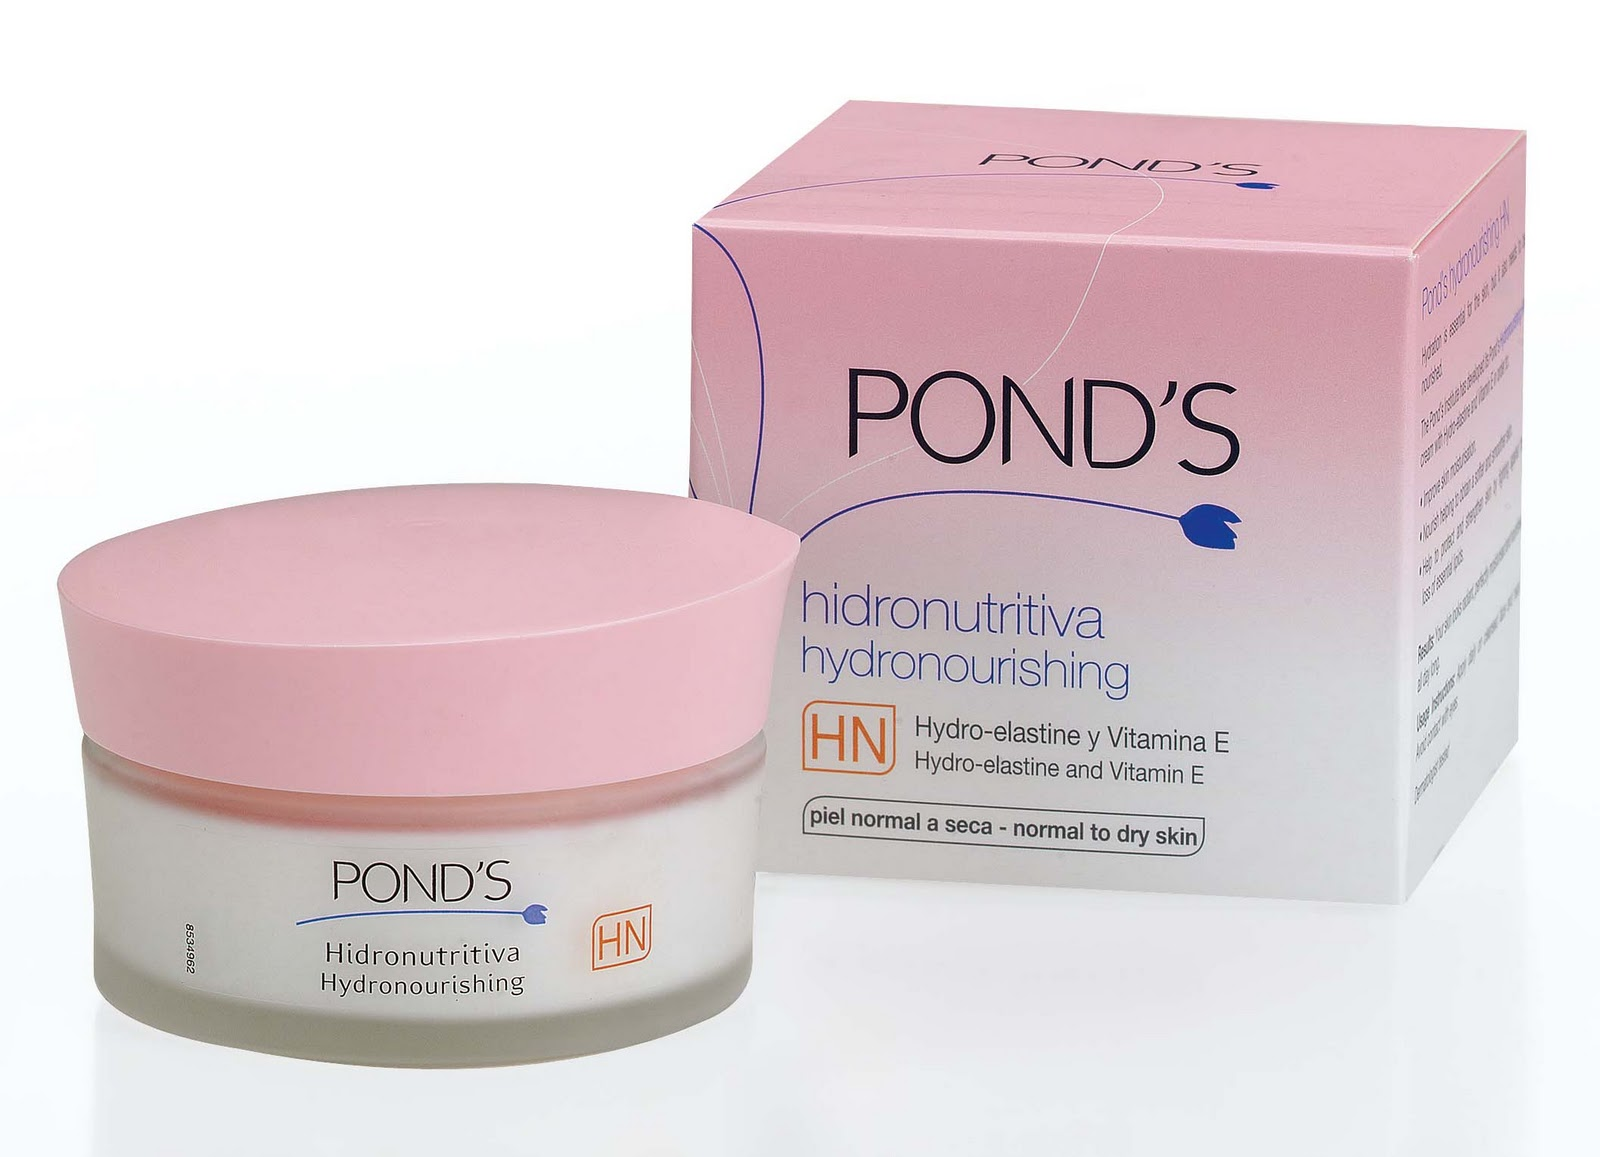 ponds cosmetics and pond Pond's - pond's age miracle reviews from south african women on beauty bulletin share your experience to influence others and build better brands.